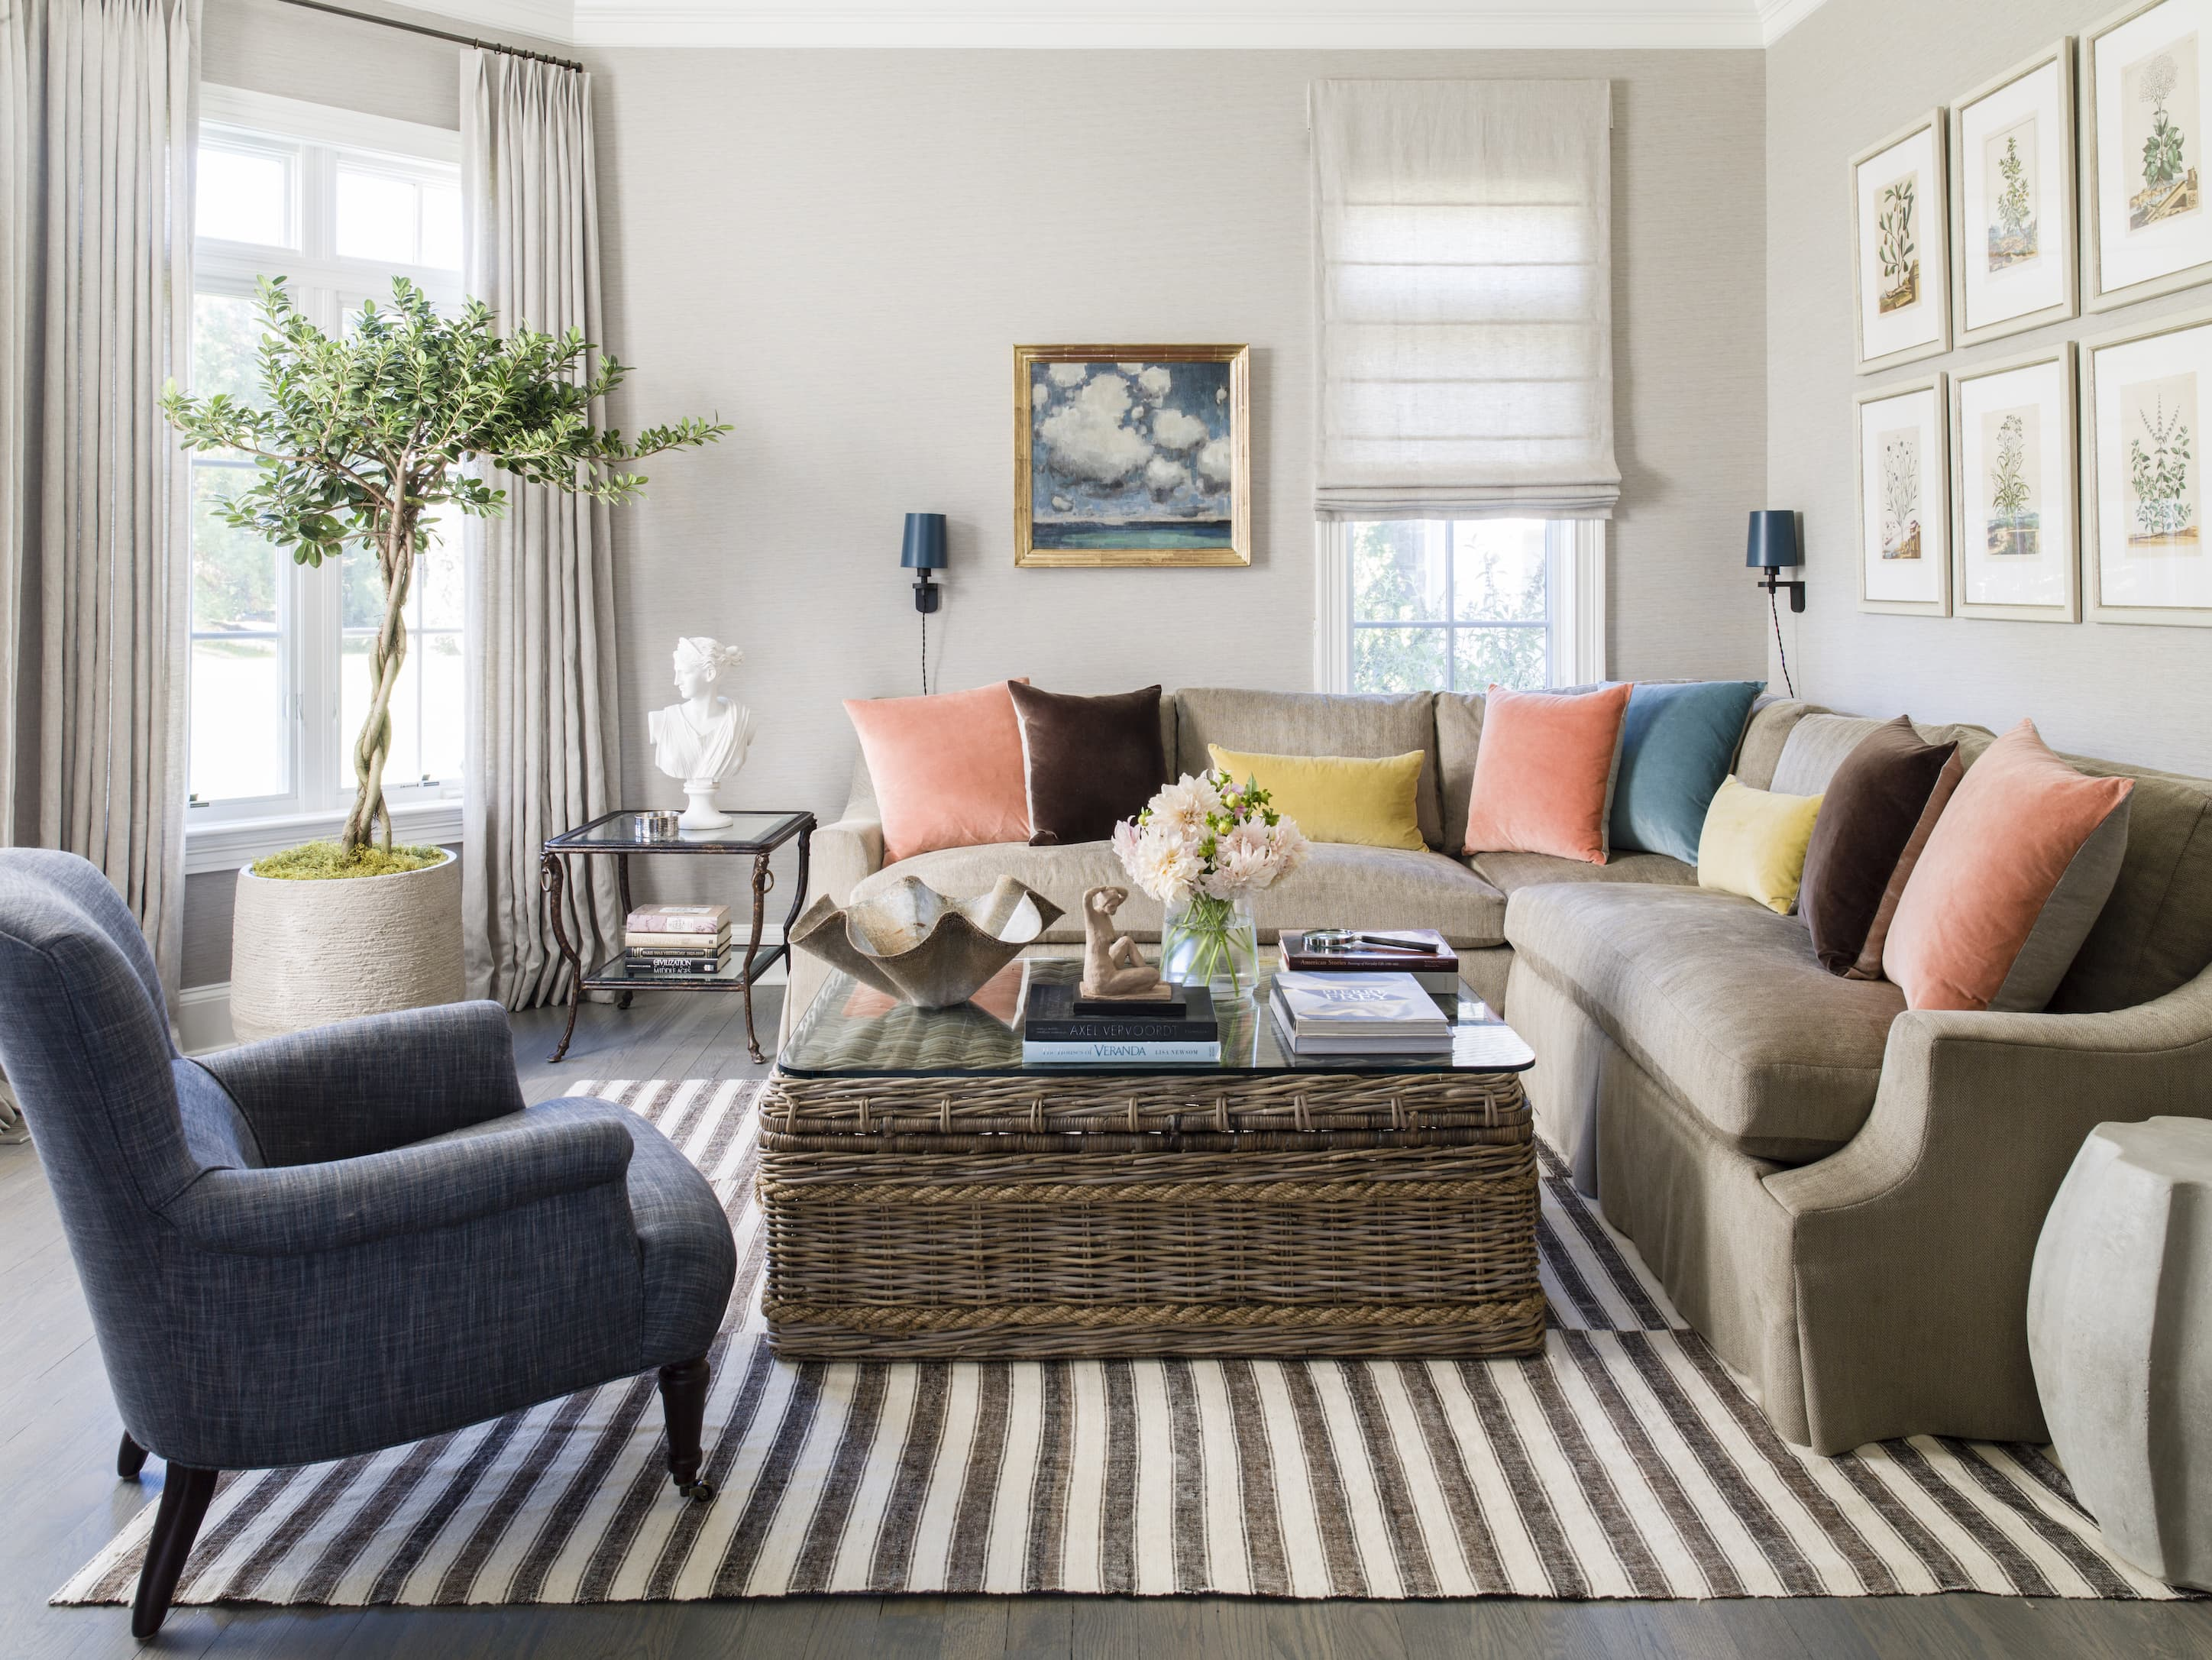 A living room with a lounge chair, coffee table, and sofa with many colorful throw pillows.